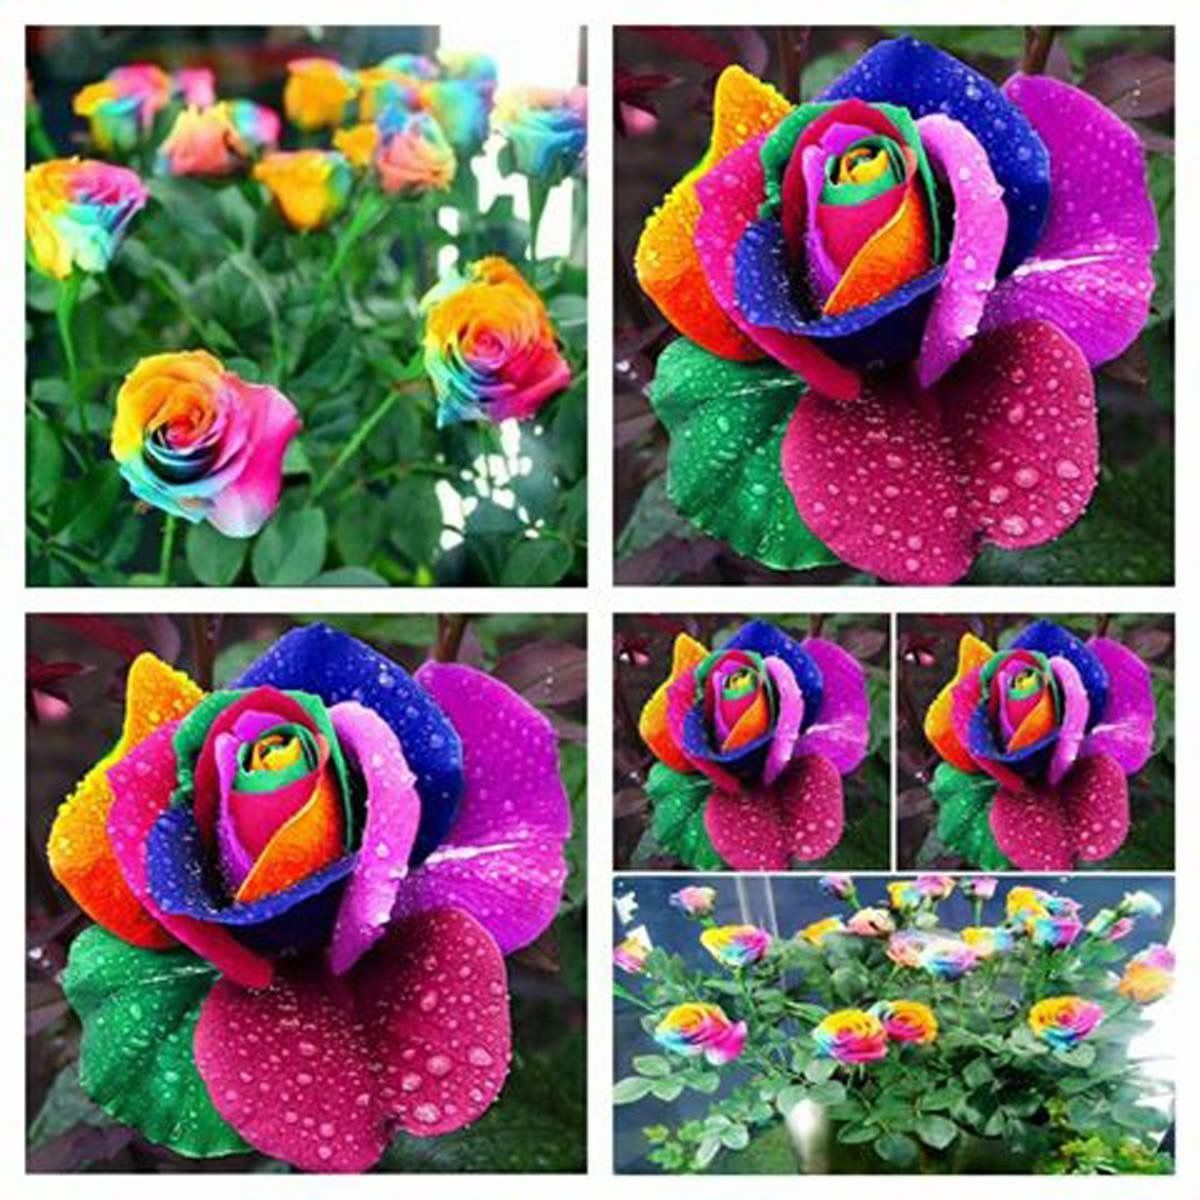 These Rainbow Roses Would Be So Magical In The Garden What Do You Think Find Rainbow Rose Seeds Here Http Amzn T Rose Seeds Rainbow Roses Flower Seeds